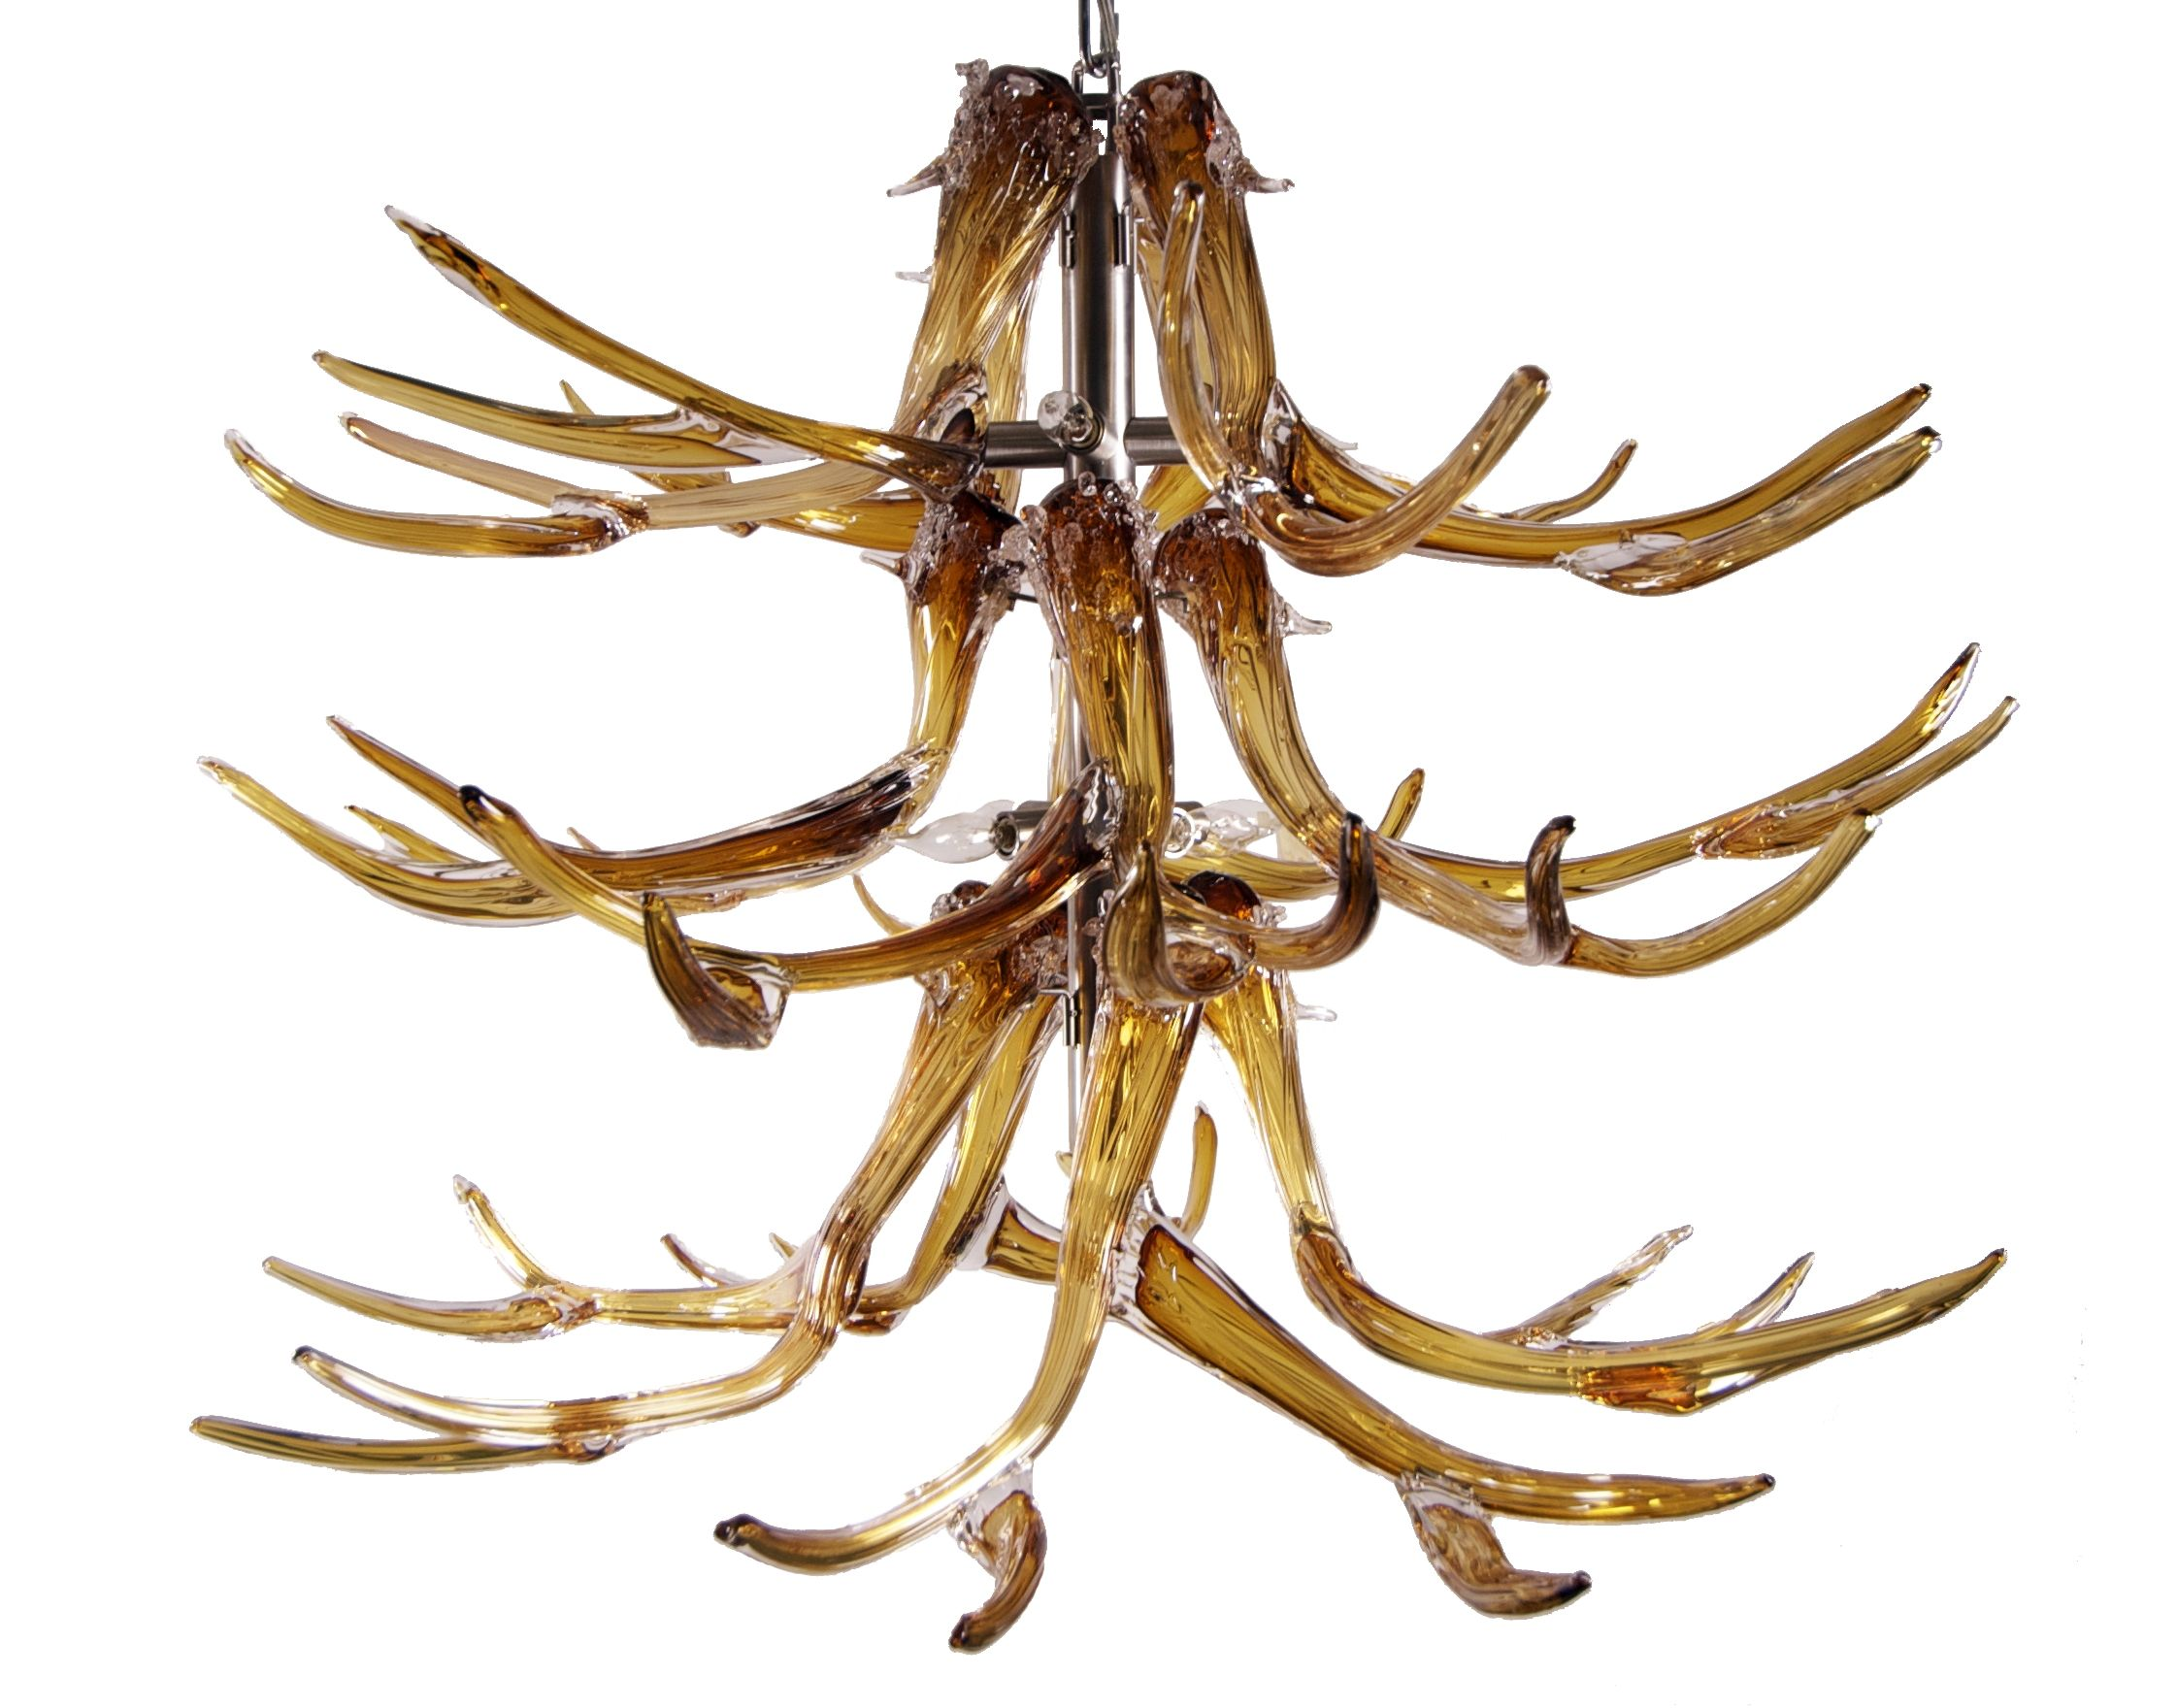 Glass antler chandelier please call for colorsize options and glass antler chandelier please call for colorsize options and pricing as featured arubaitofo Image collections